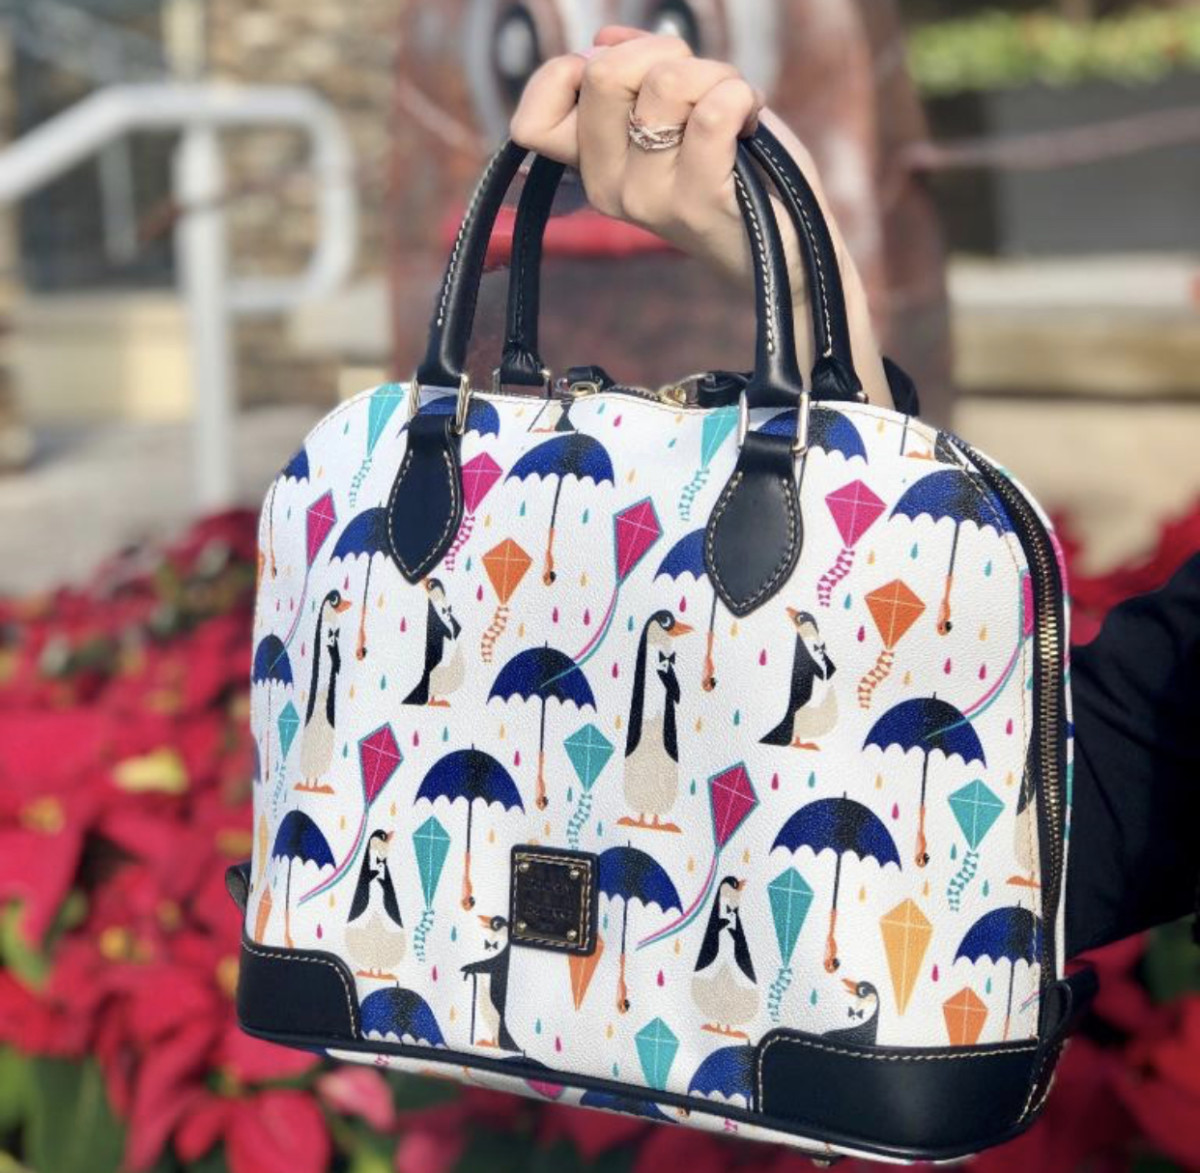 The New Mary Poppins Dooney's have arrived! 3